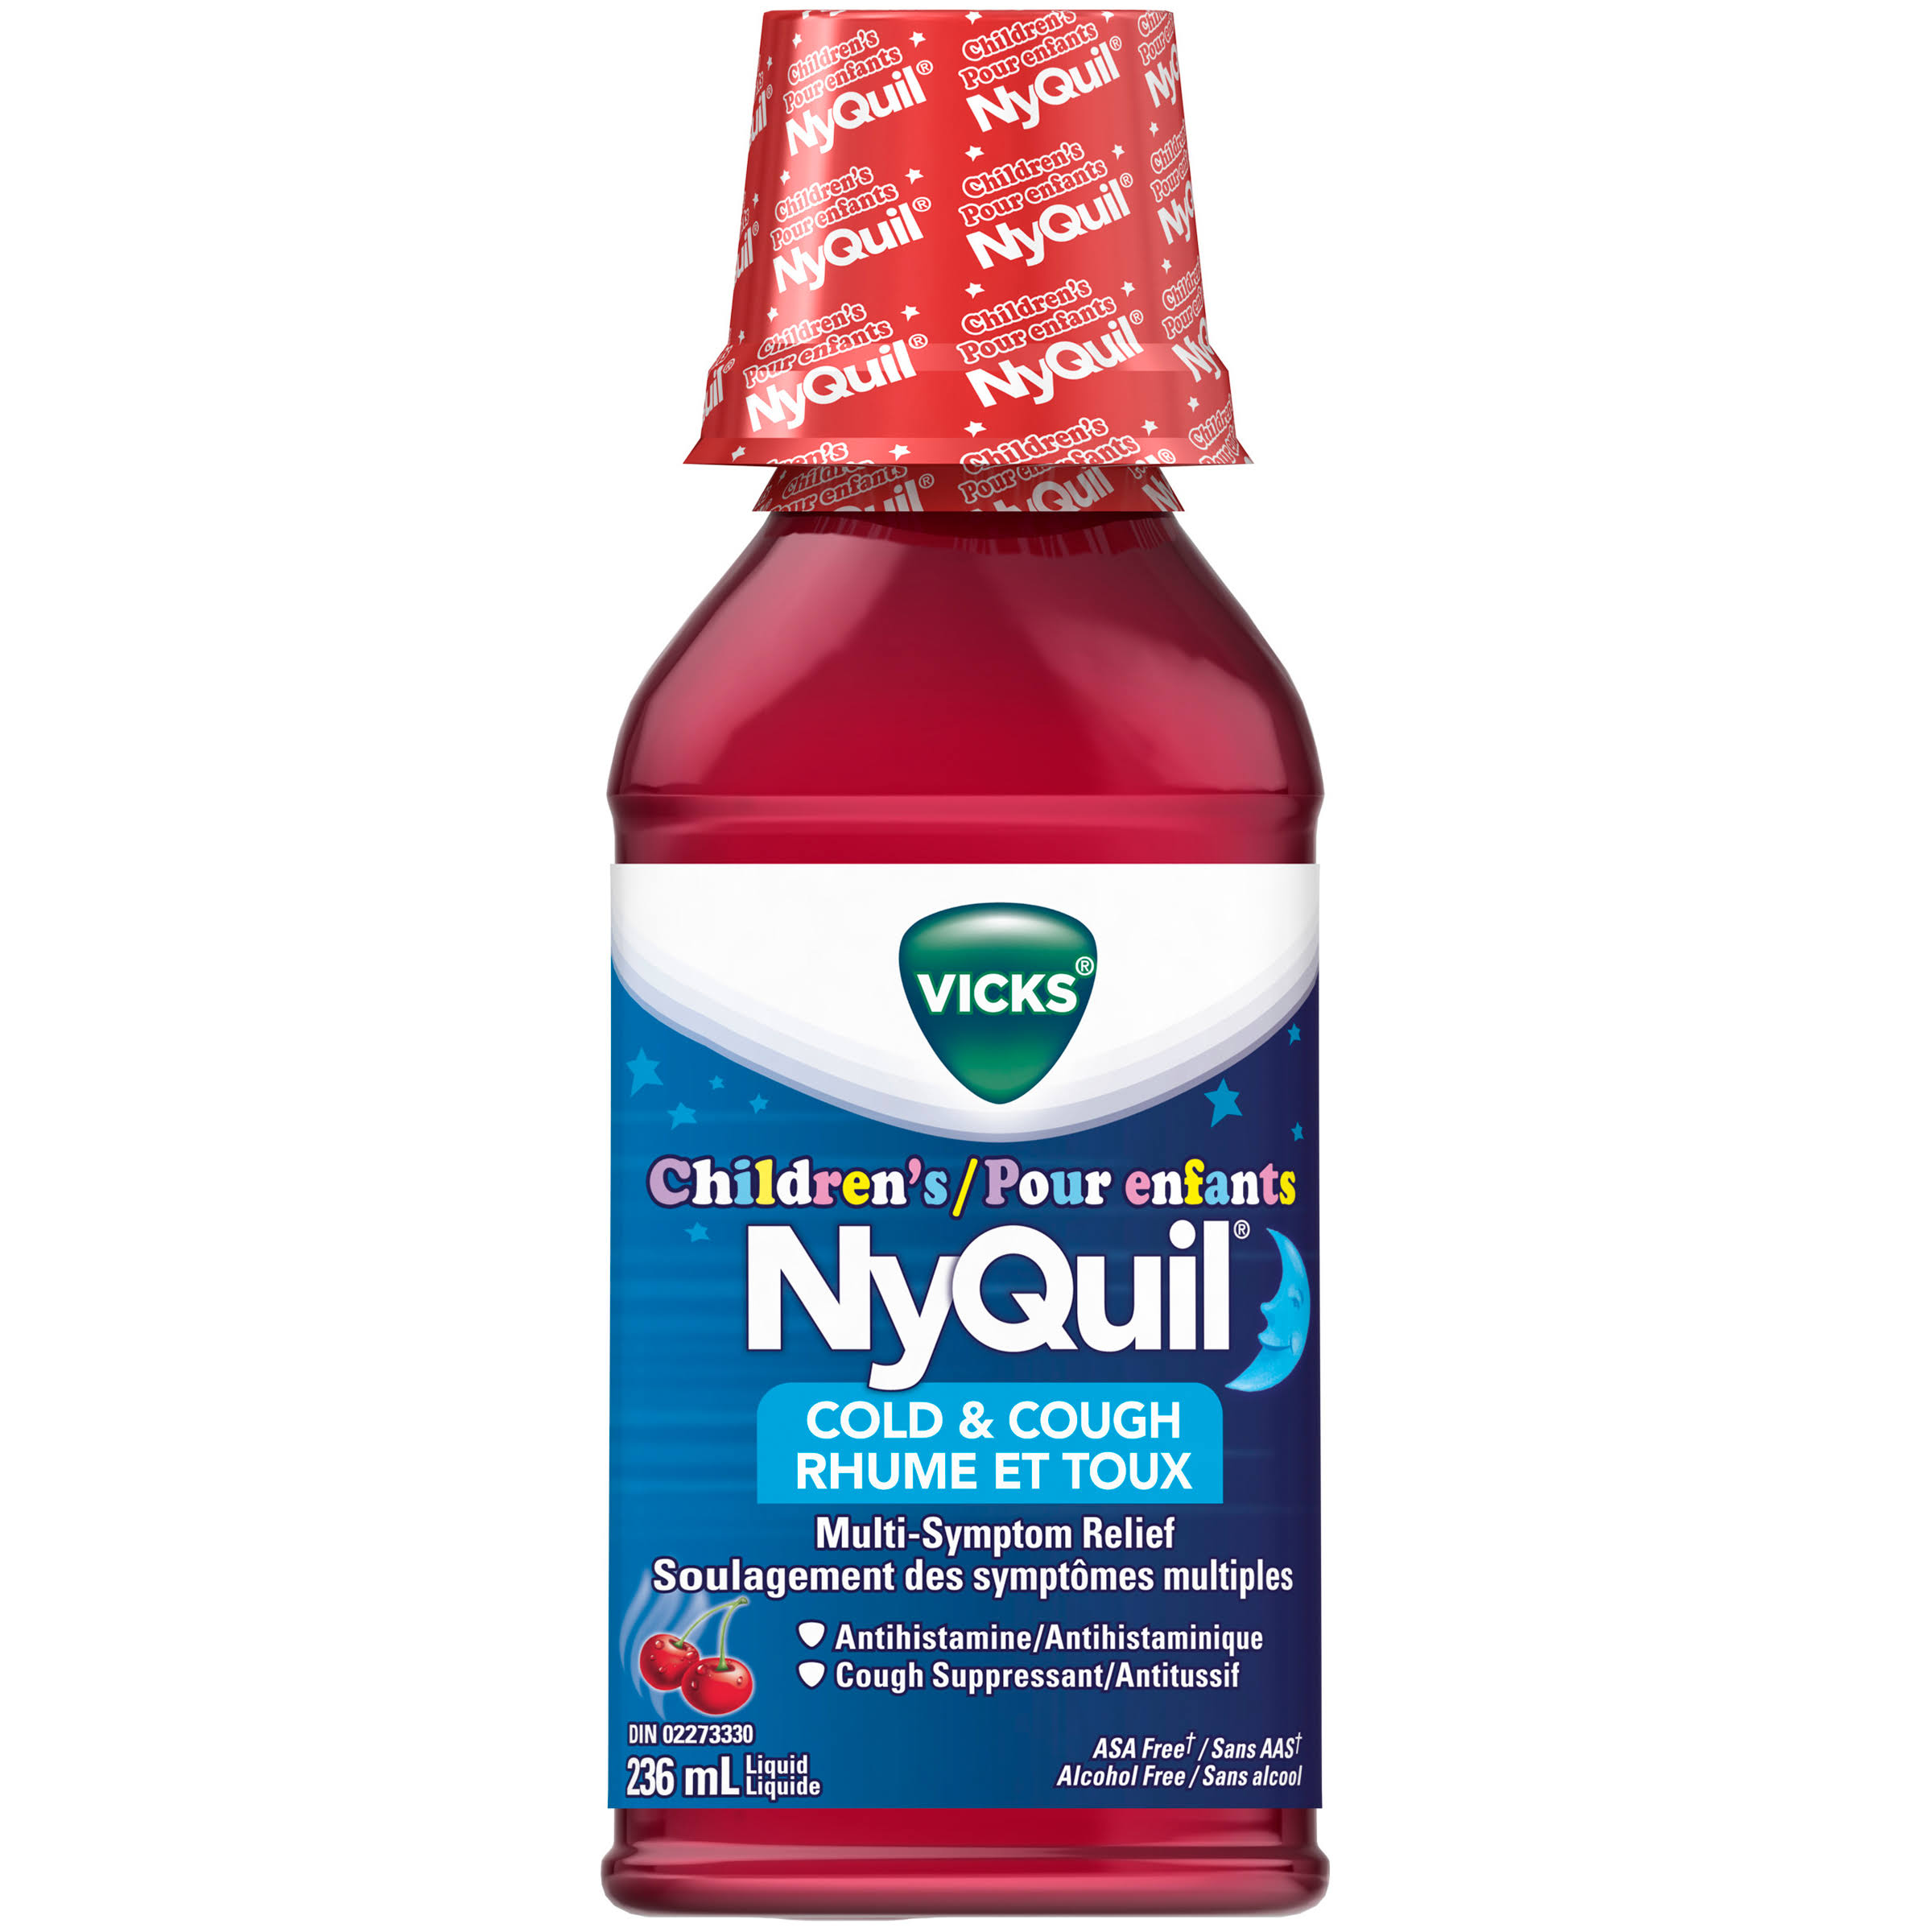 Vicks Children's Nyquil Cold & Cough Multi-Symptom Relief Syrup, Cherry, 236 ml